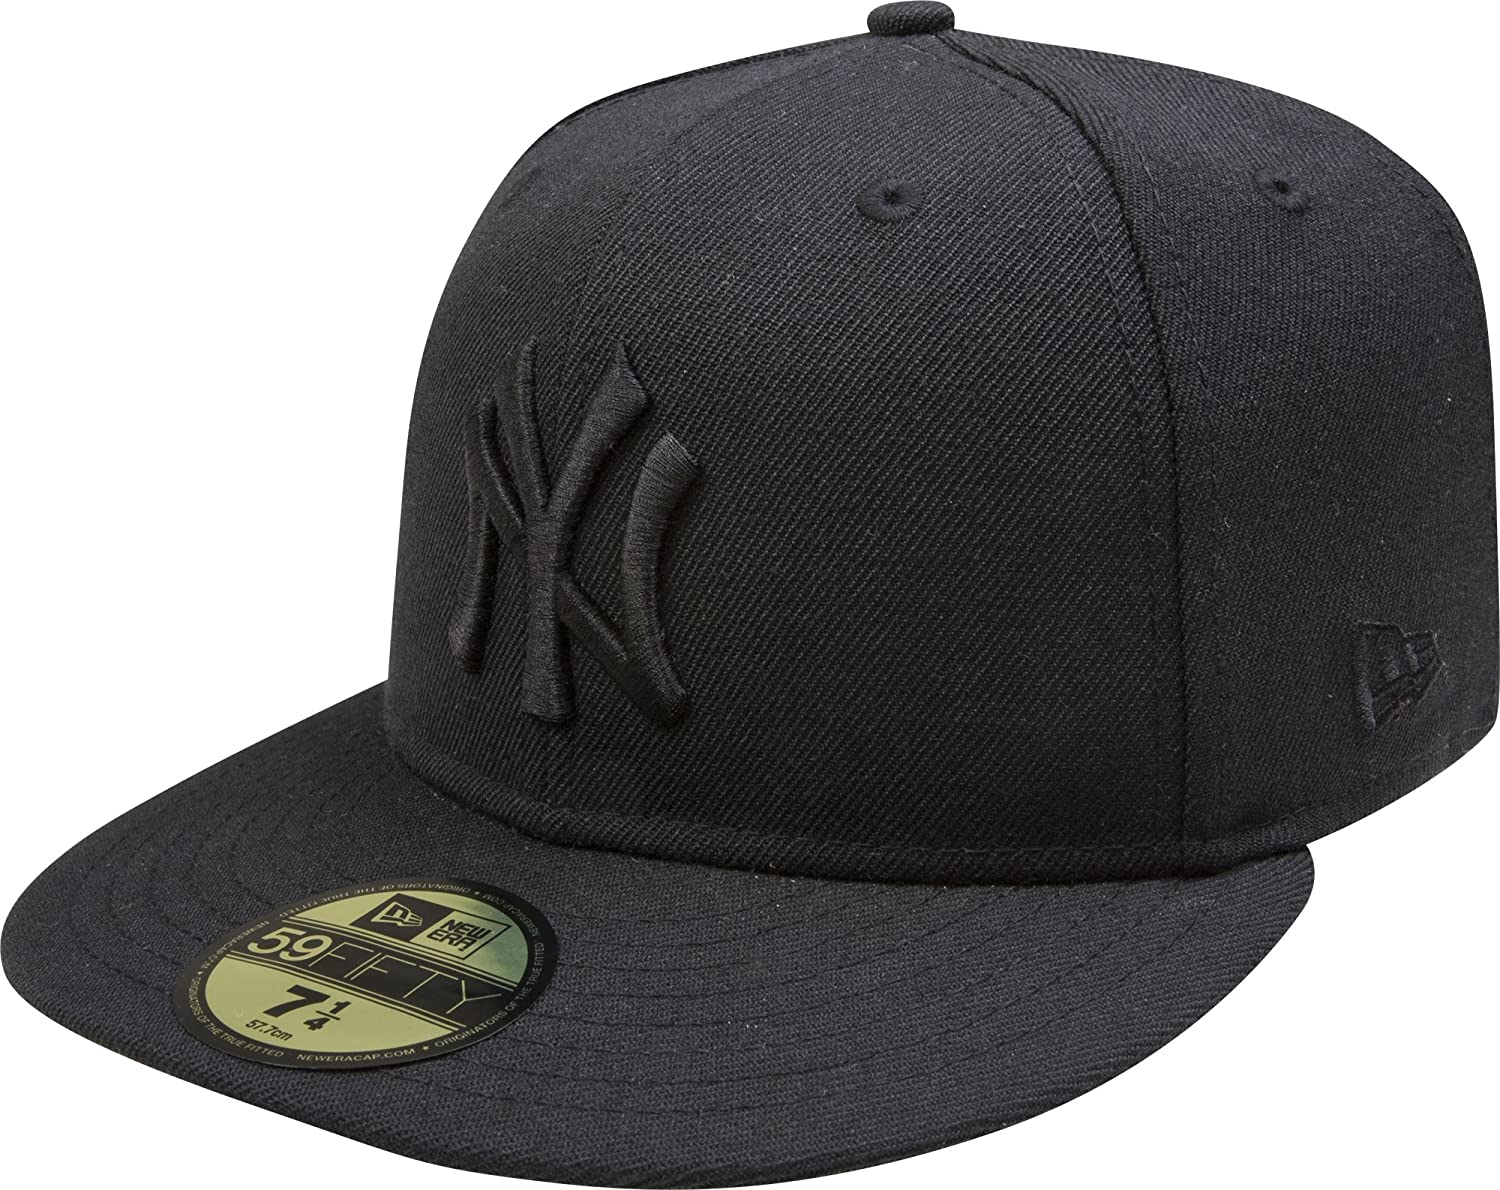 New Era 59Fifty Hat MLB New York Yankees Big One Mens Black Fitted 5950 Cap Wool